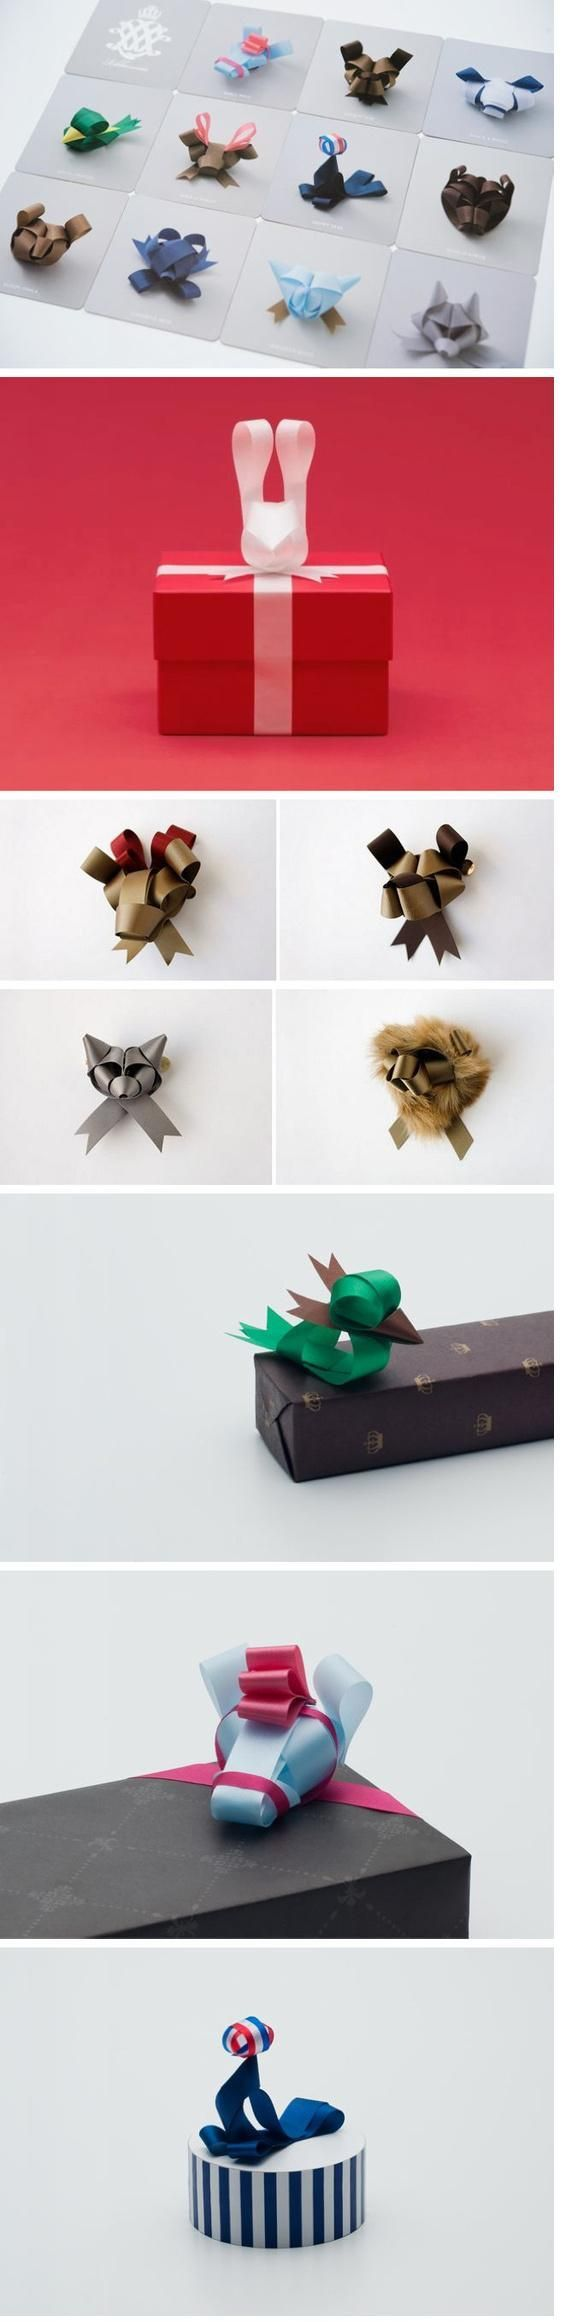 I want to learn how to make these! i mean come on! the bird and that rabbit are so freakin cute!!